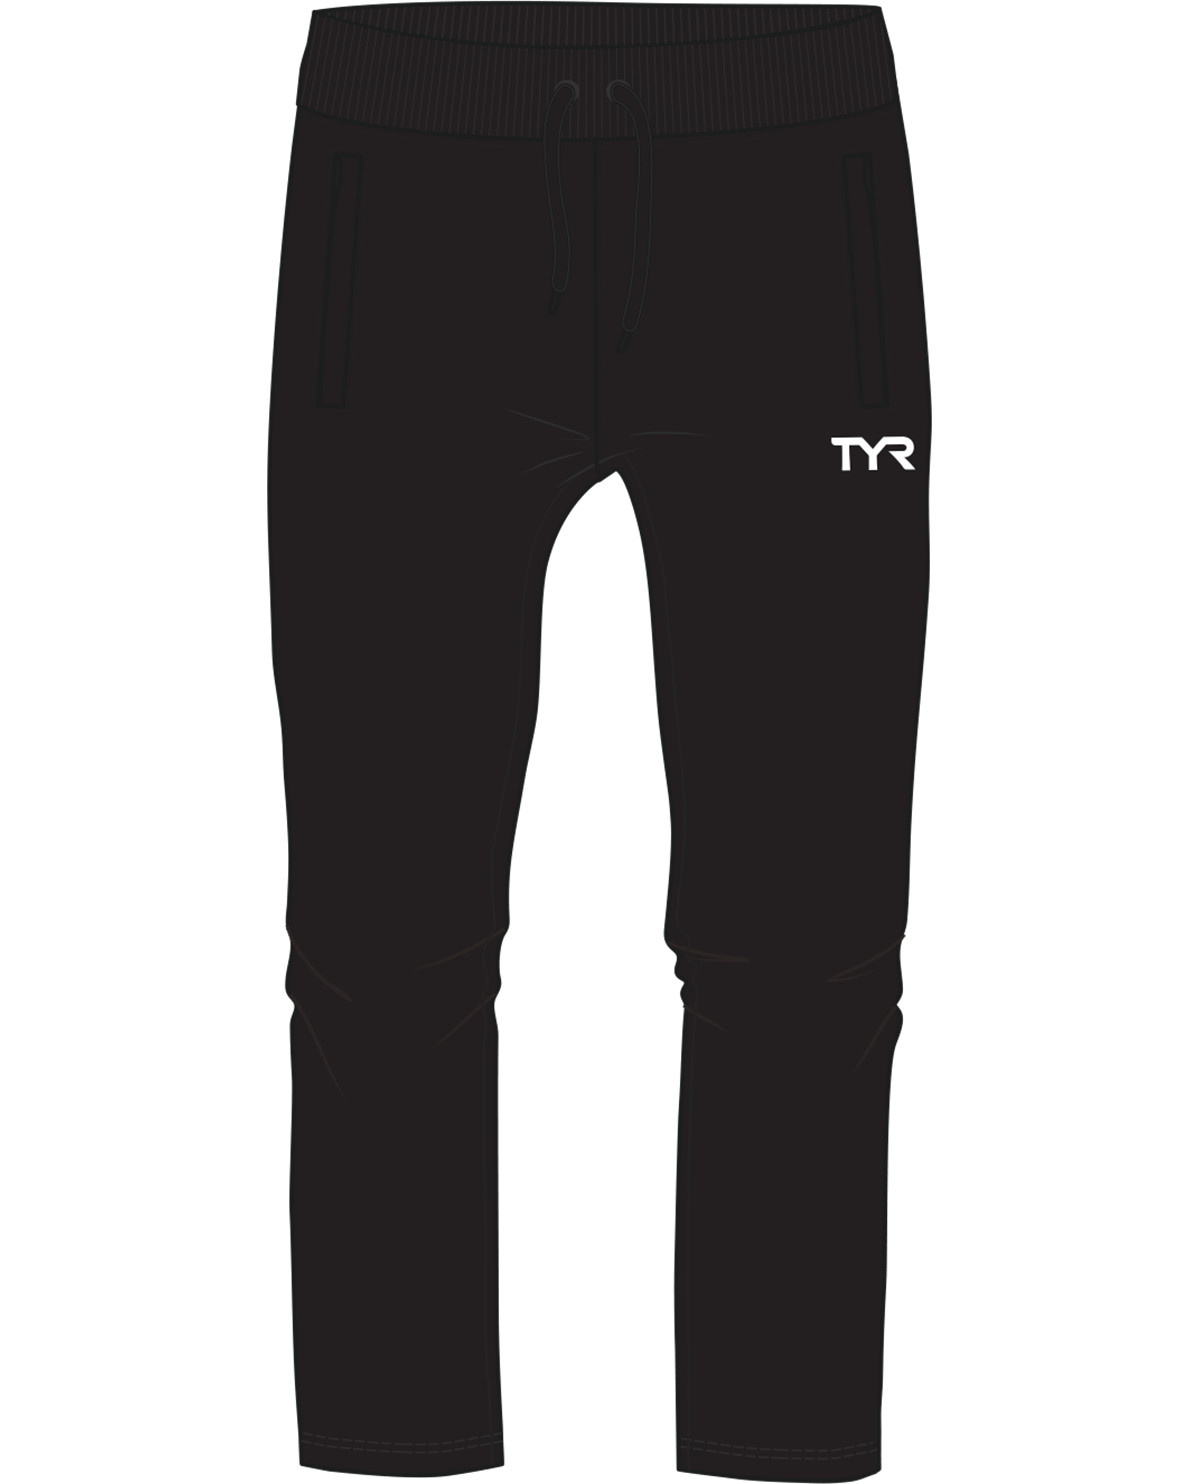 TYR MSC Female Warm Up Pant